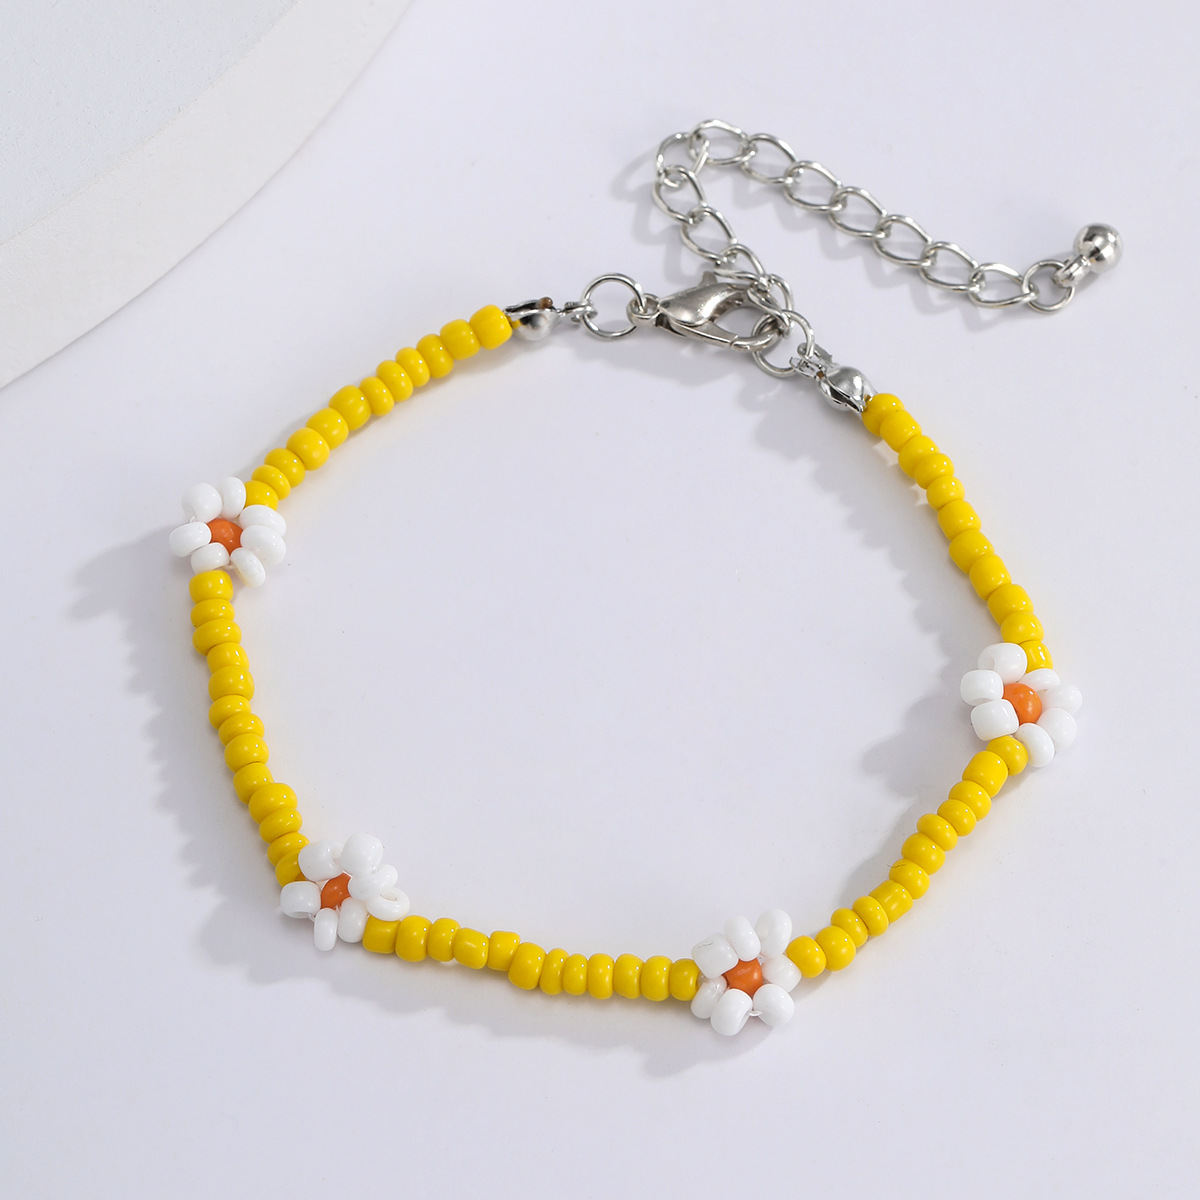 fashion jewelry color beaded ethnic ornaments creative rice beads woven small daisy necklace wholesale nihaojewelry NHXR234259